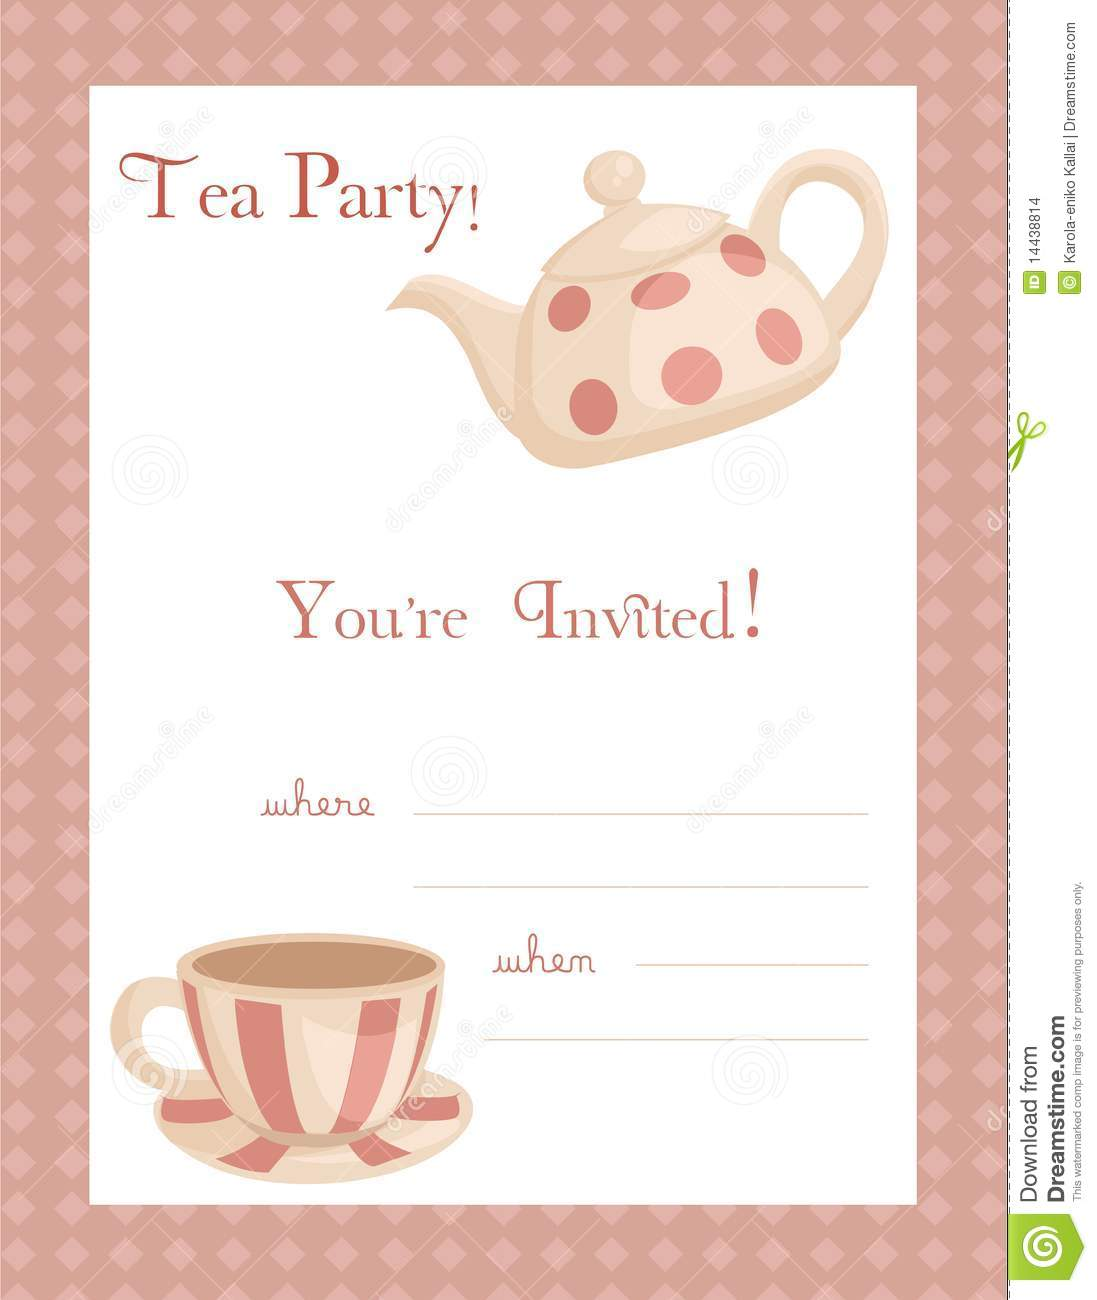 Tea Party Invitation Stock Vector Illustration Of Breakfast